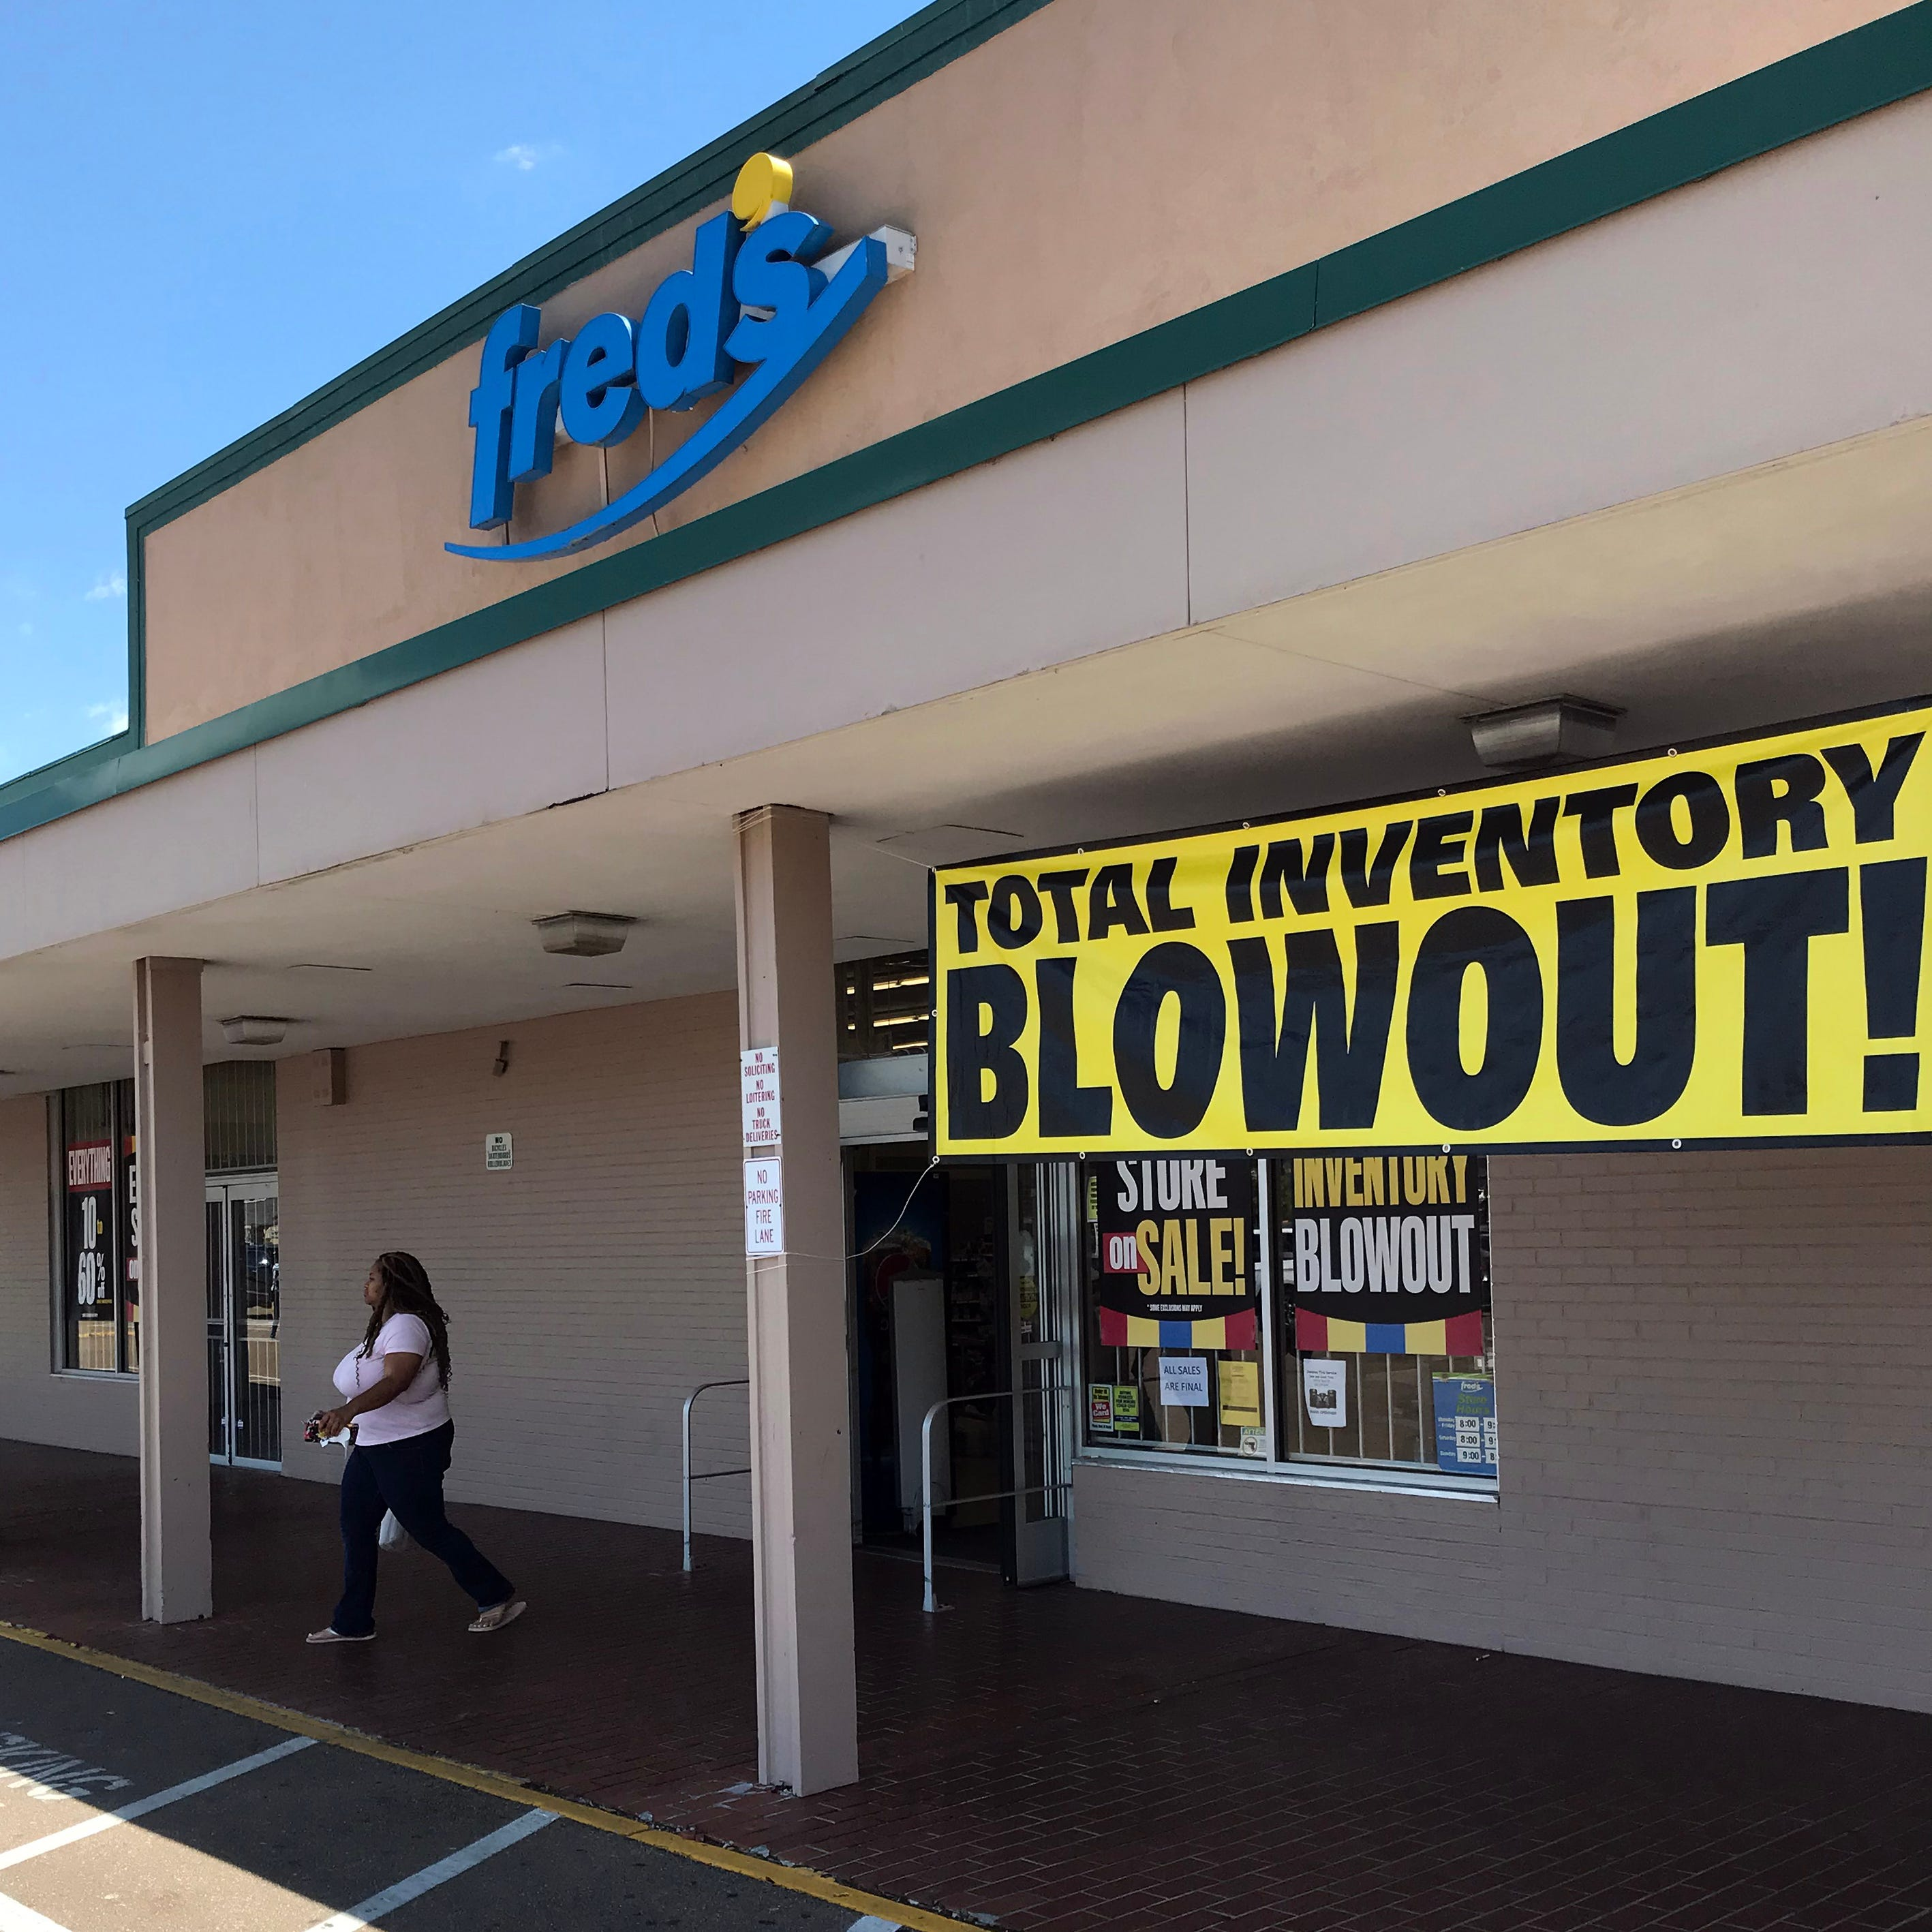 More Fred's stores closing: Deep discounts offered. Even fixtures for sale.